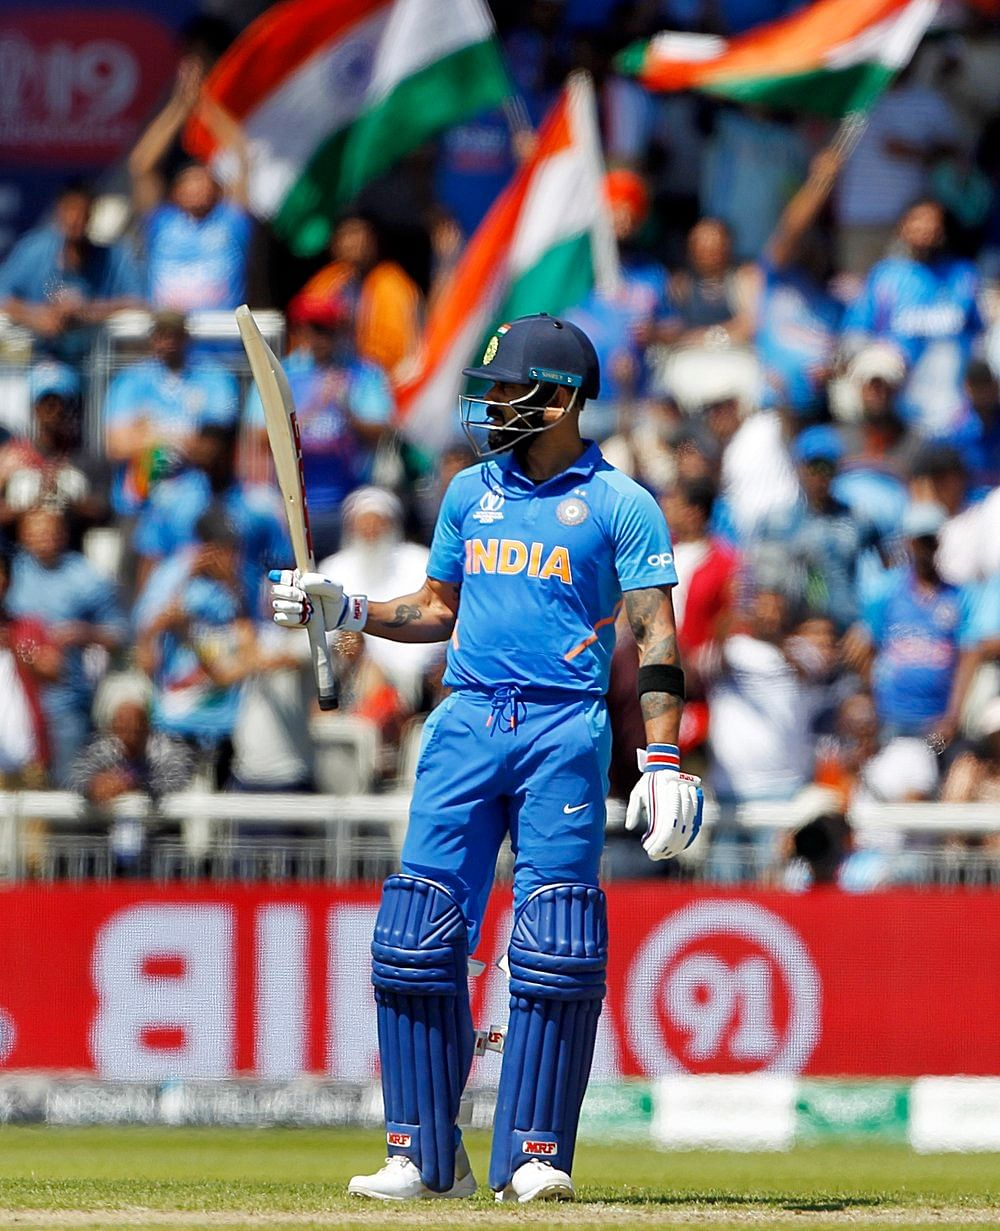 Indian batsman Virat Kohli celebrates his Half-Century during a match against West Indies in ICC CWC 2019 at Old Trafford in Manchester on Thursday.